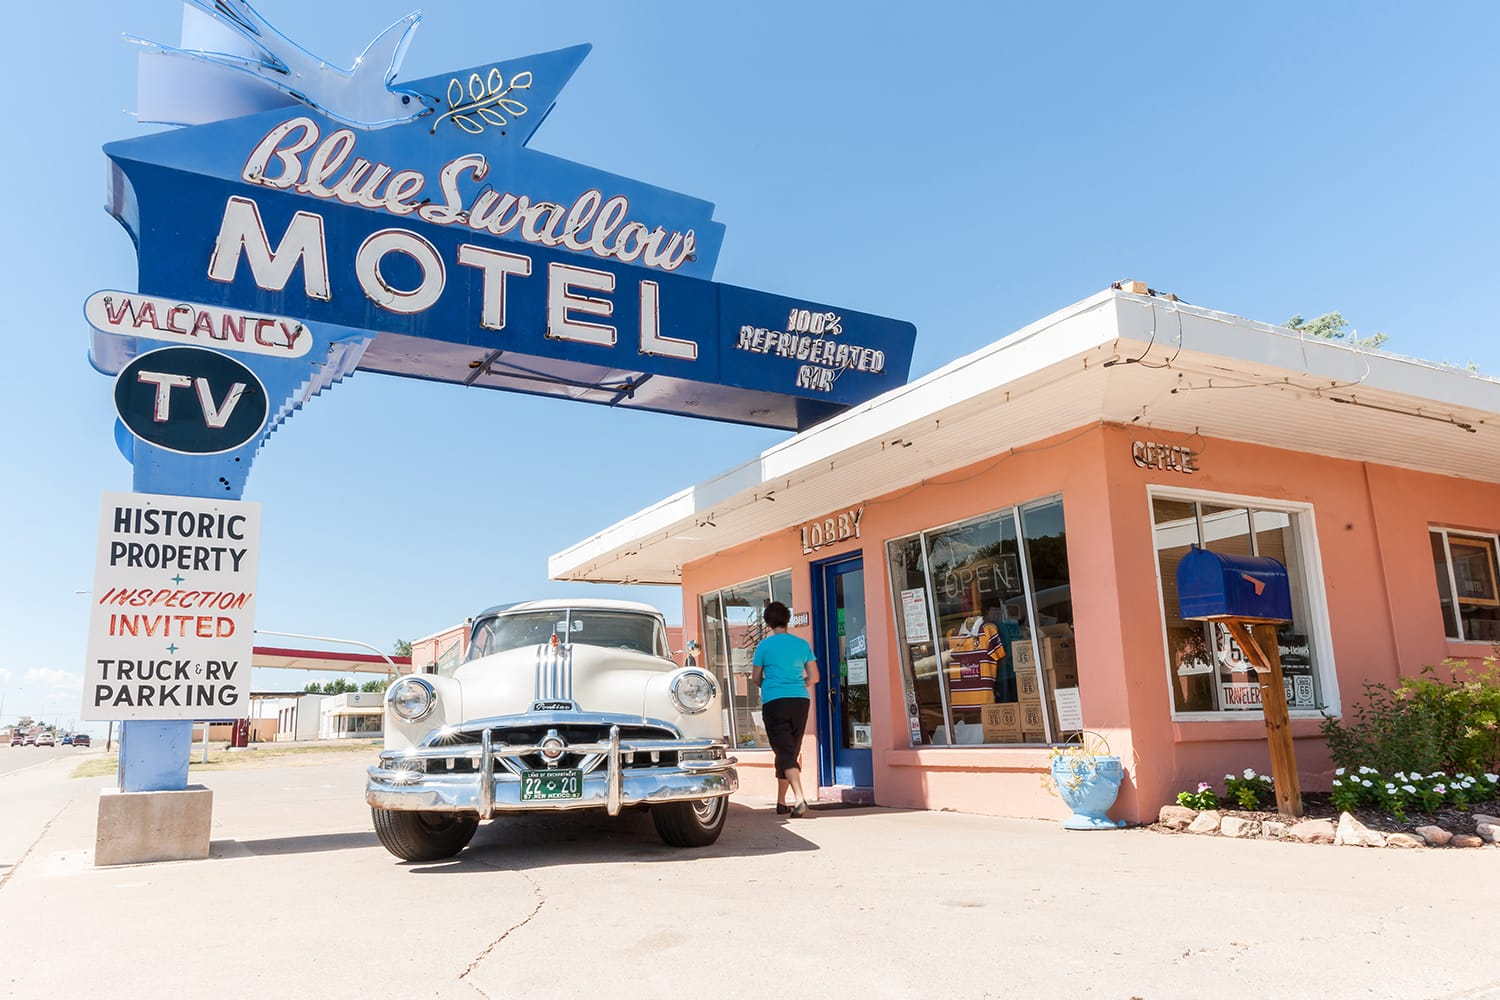 Blue Swallow Motel on Route 66 in New Mexico, USA